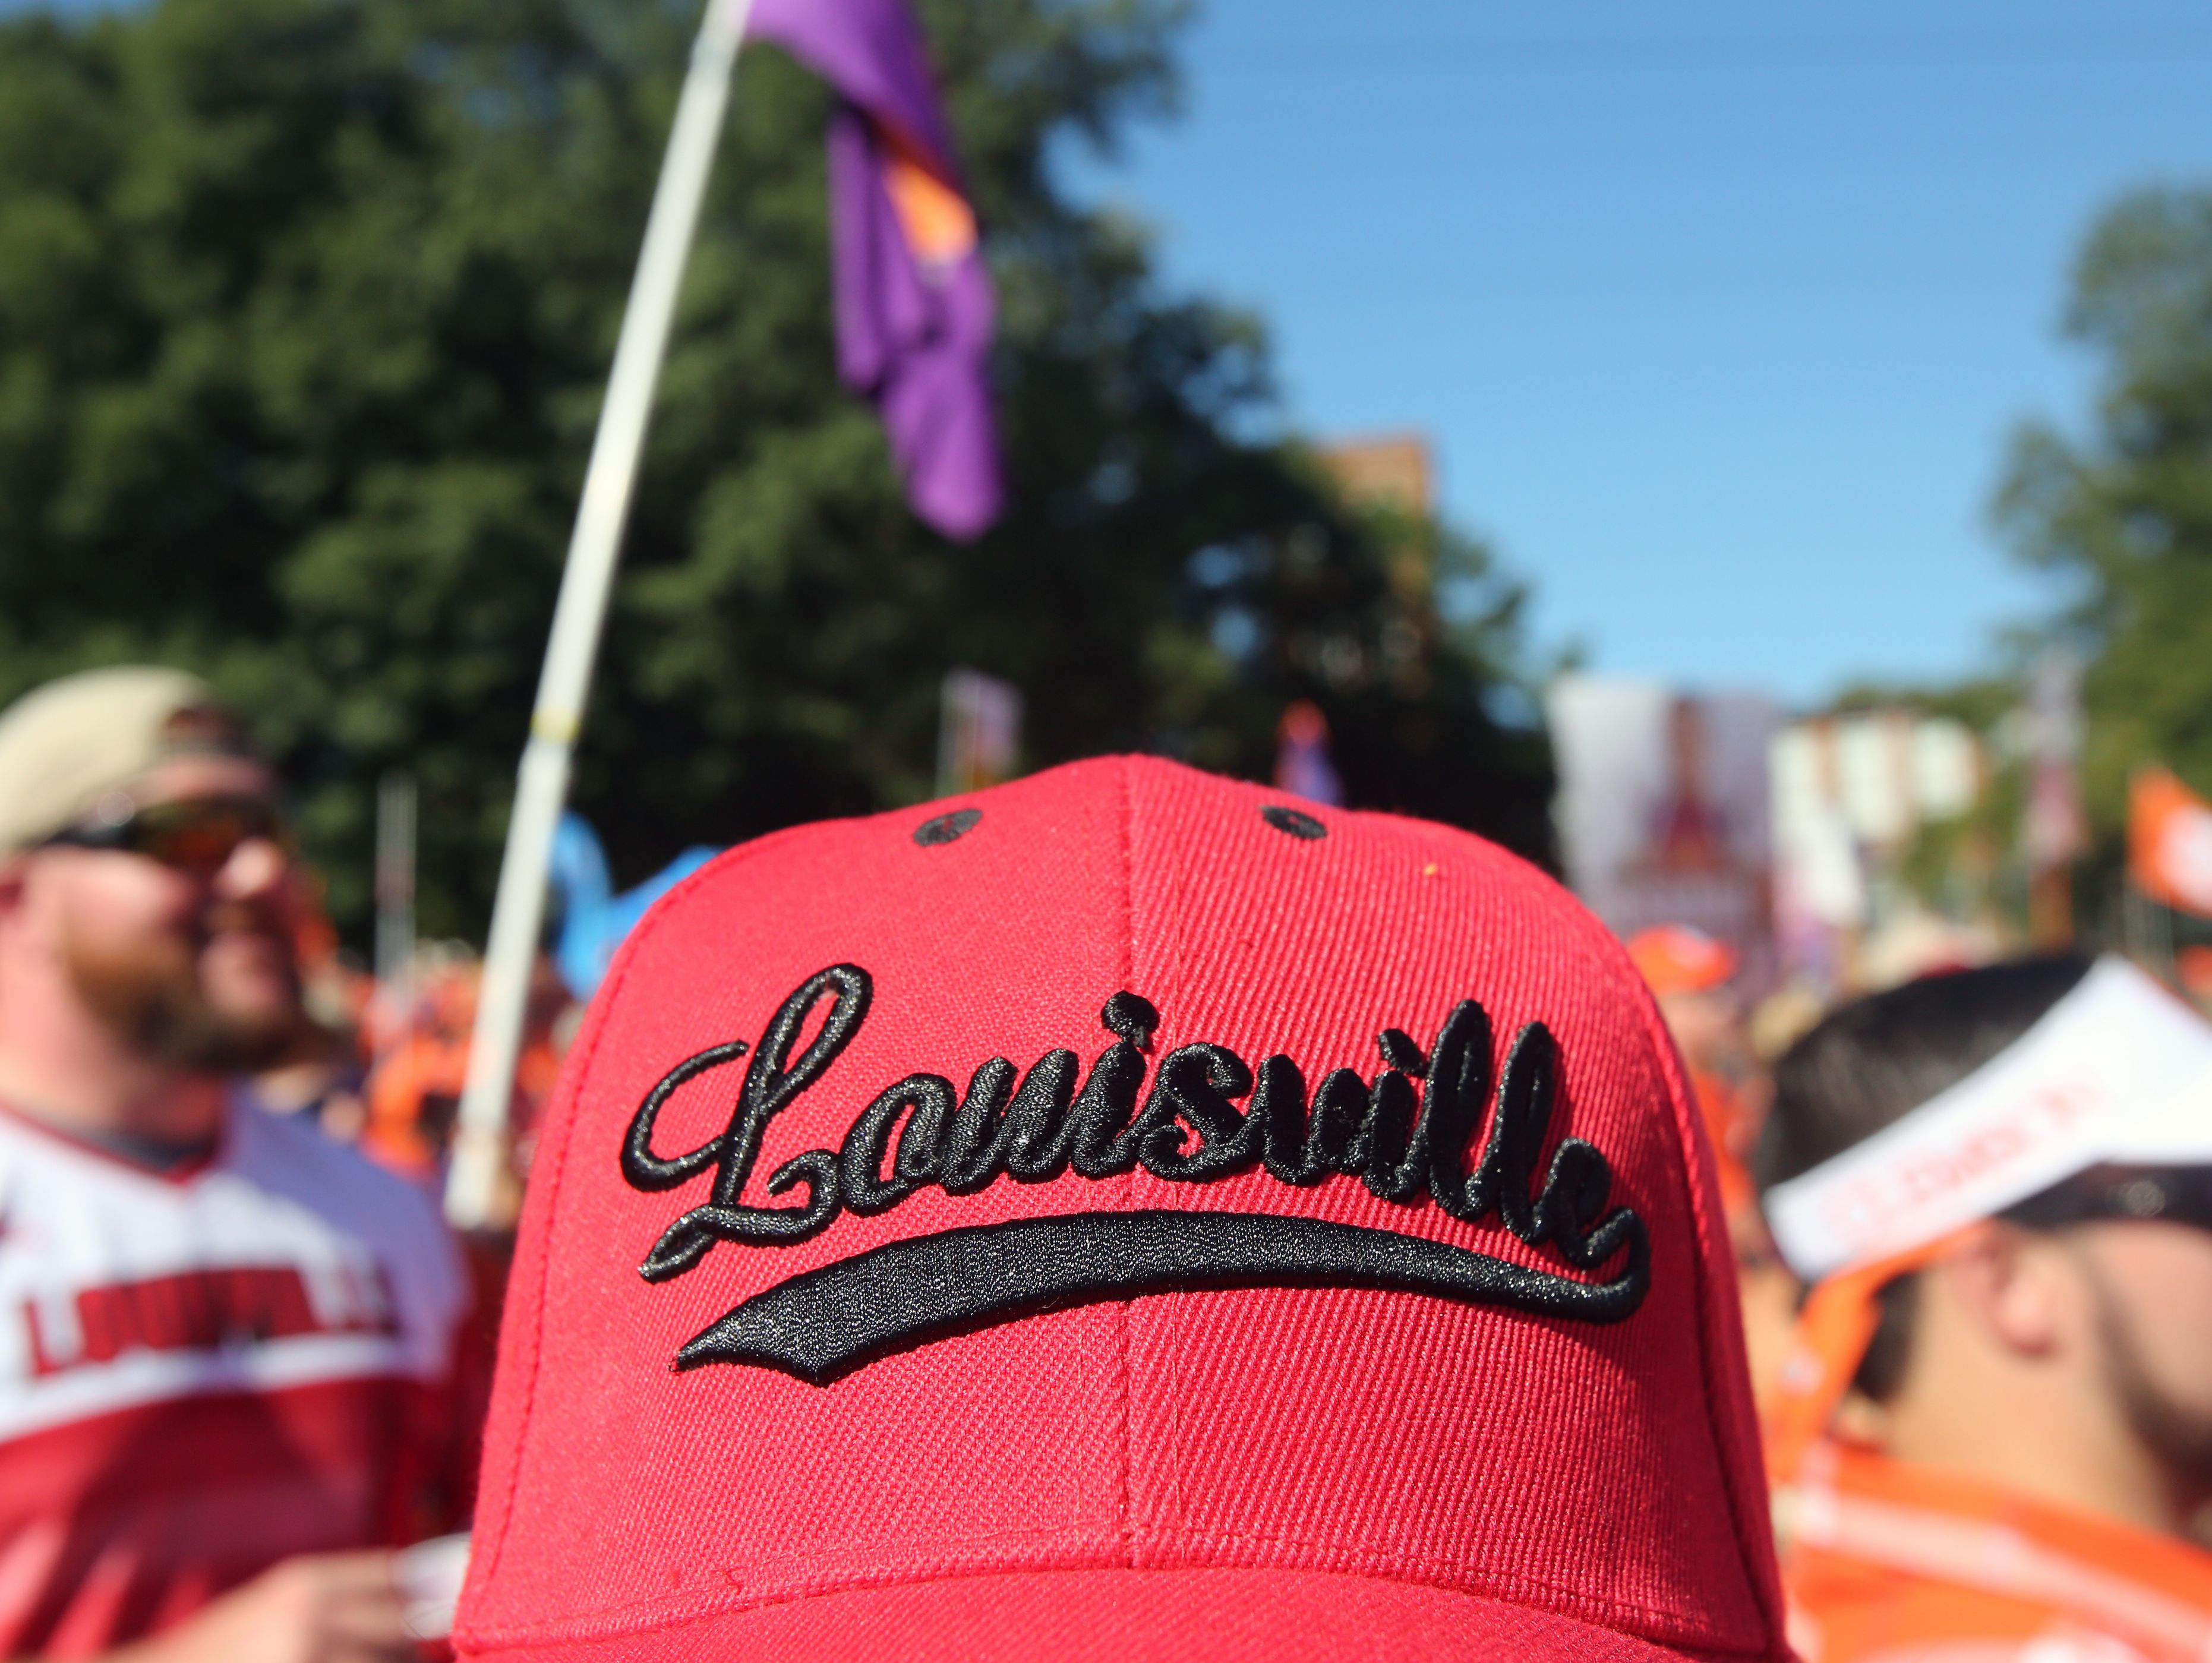 Louisville fans show up for College Gameday at Clemson. Oct. 1, 2016